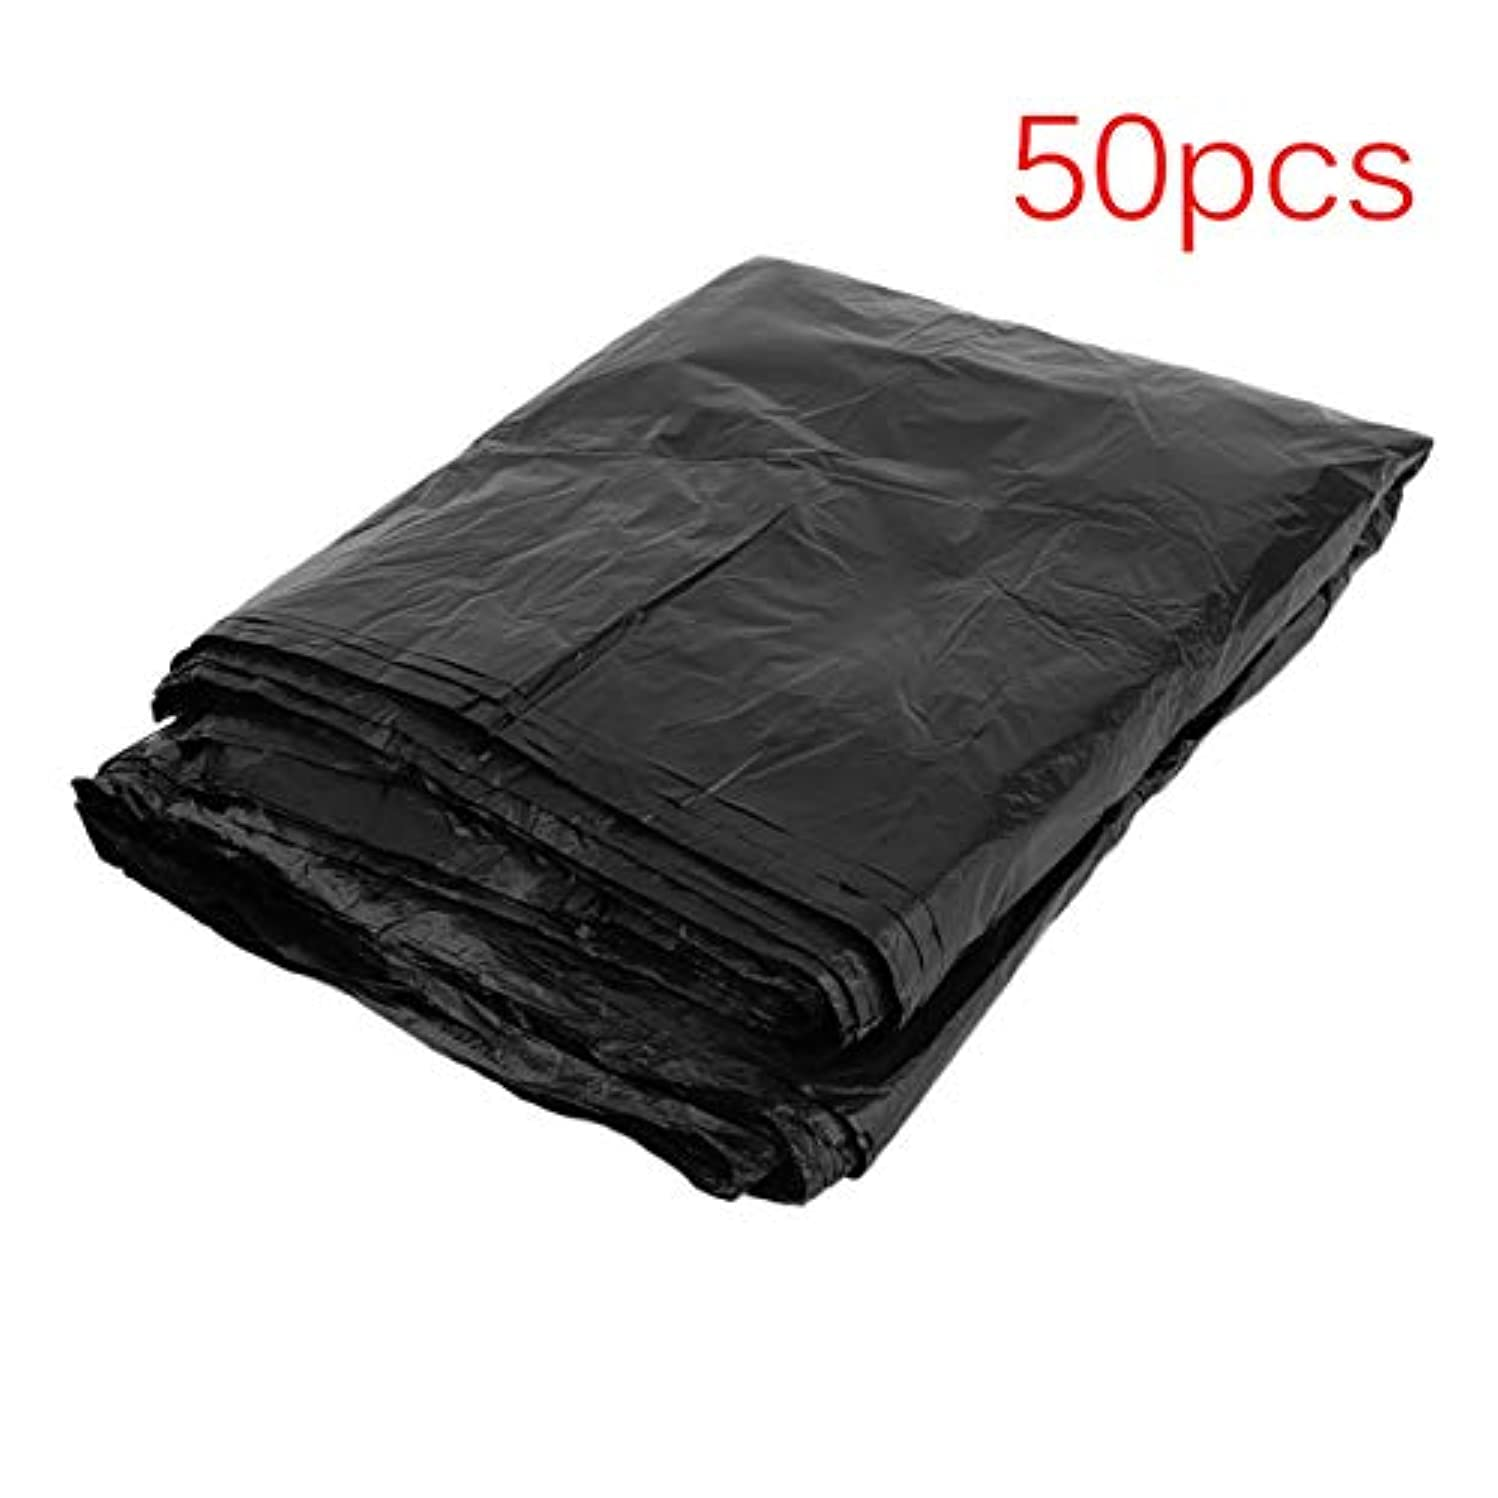 50 Pcs Large 55 Gallon Thicken Indoor Outdoor Kitchen Trash Can Garbage Rubbish Bags Household Cleaning Tool